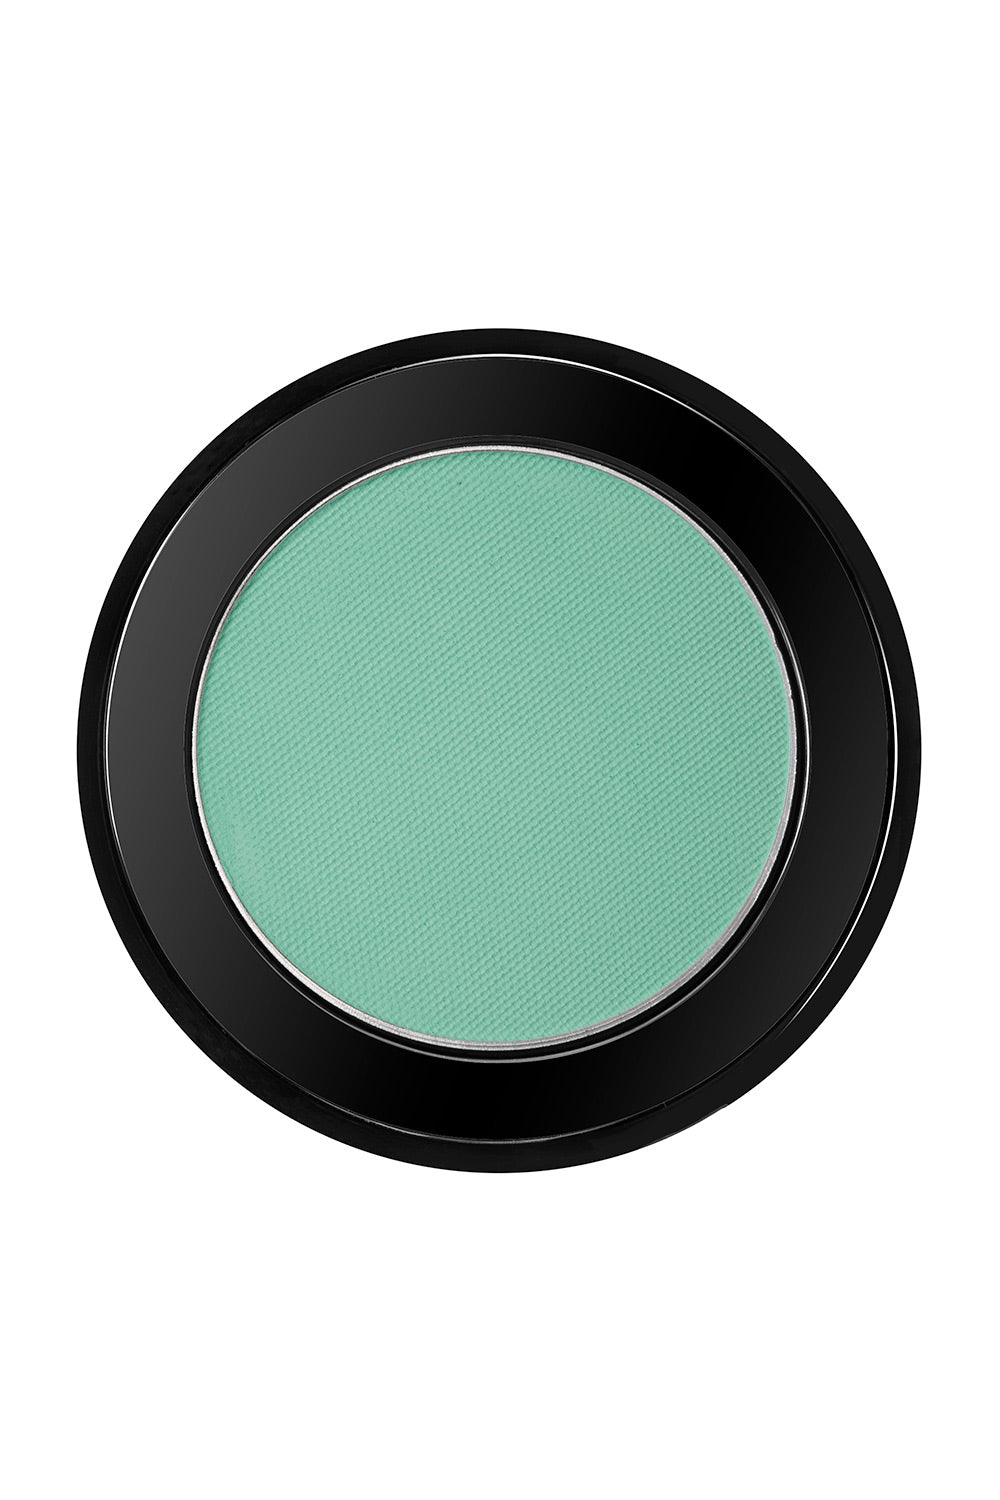 Type 2 Eyeshadow - Aloe Matte